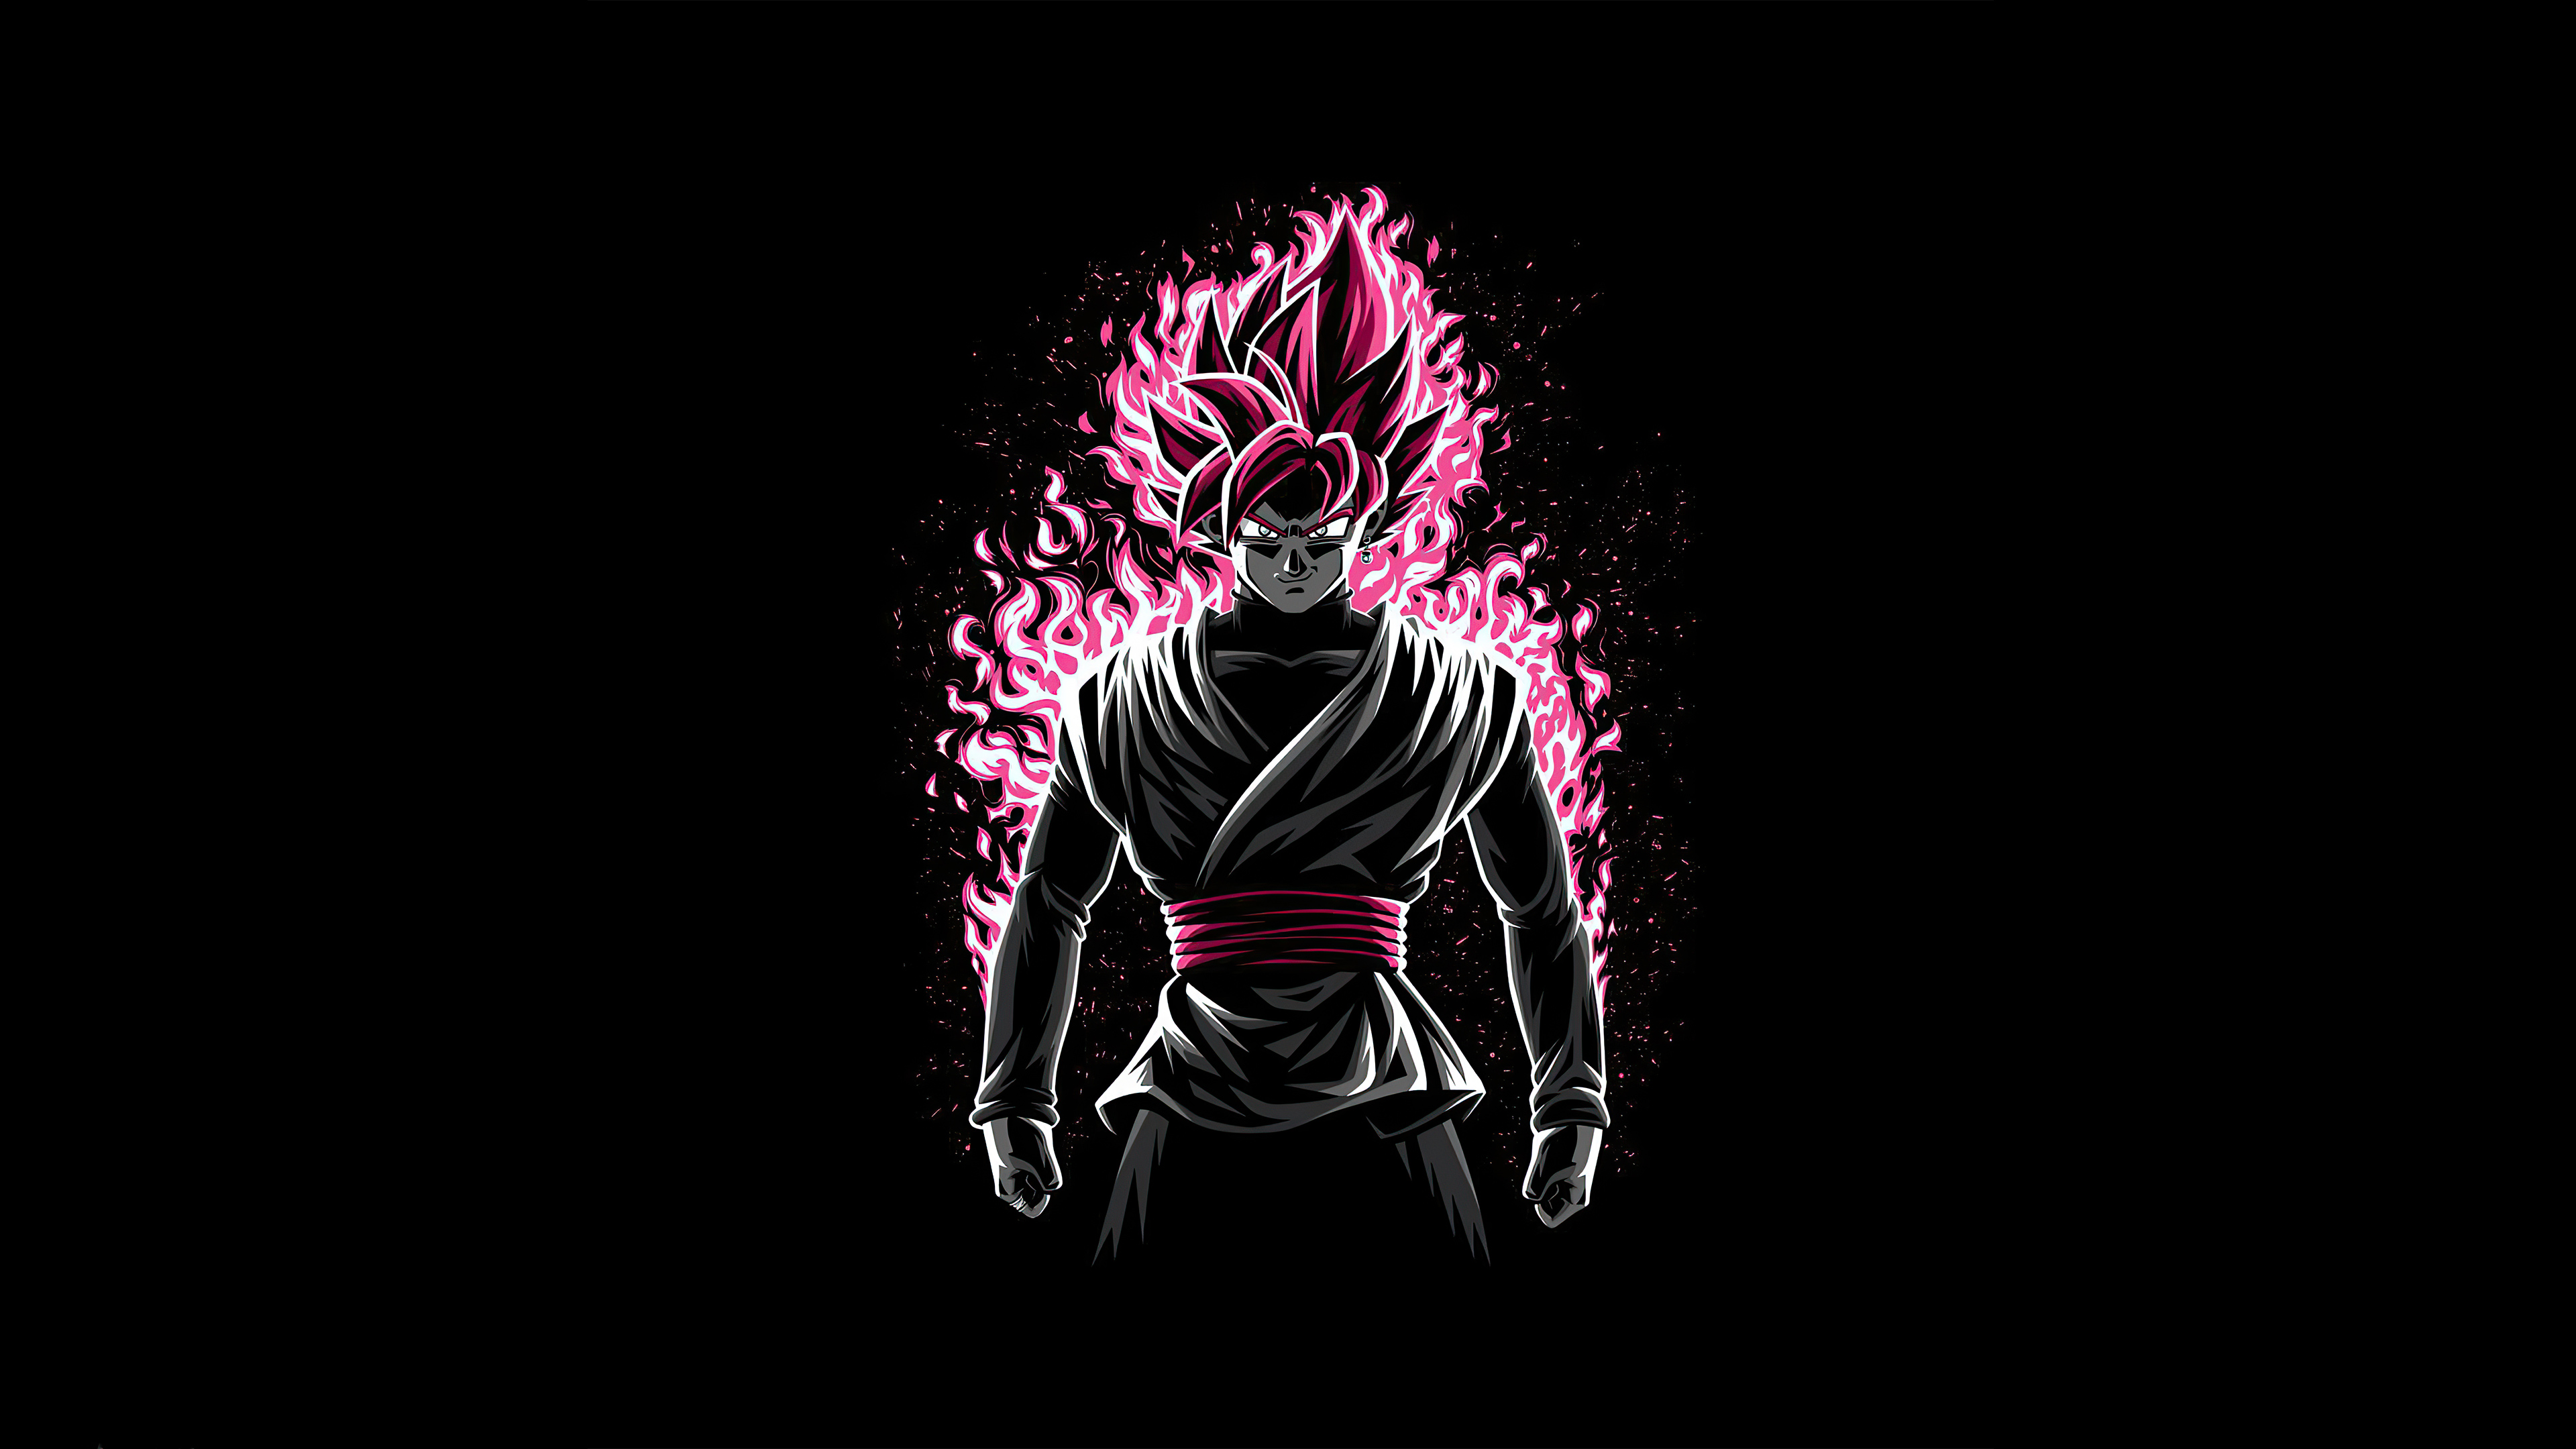 750x1334 Battle Fire Black Rose Dragon Ball Z 4k Iphone 6 Iphone 6s Iphone 7 Hd 4k Wallpapers Images Backgrounds Photos And Pictures